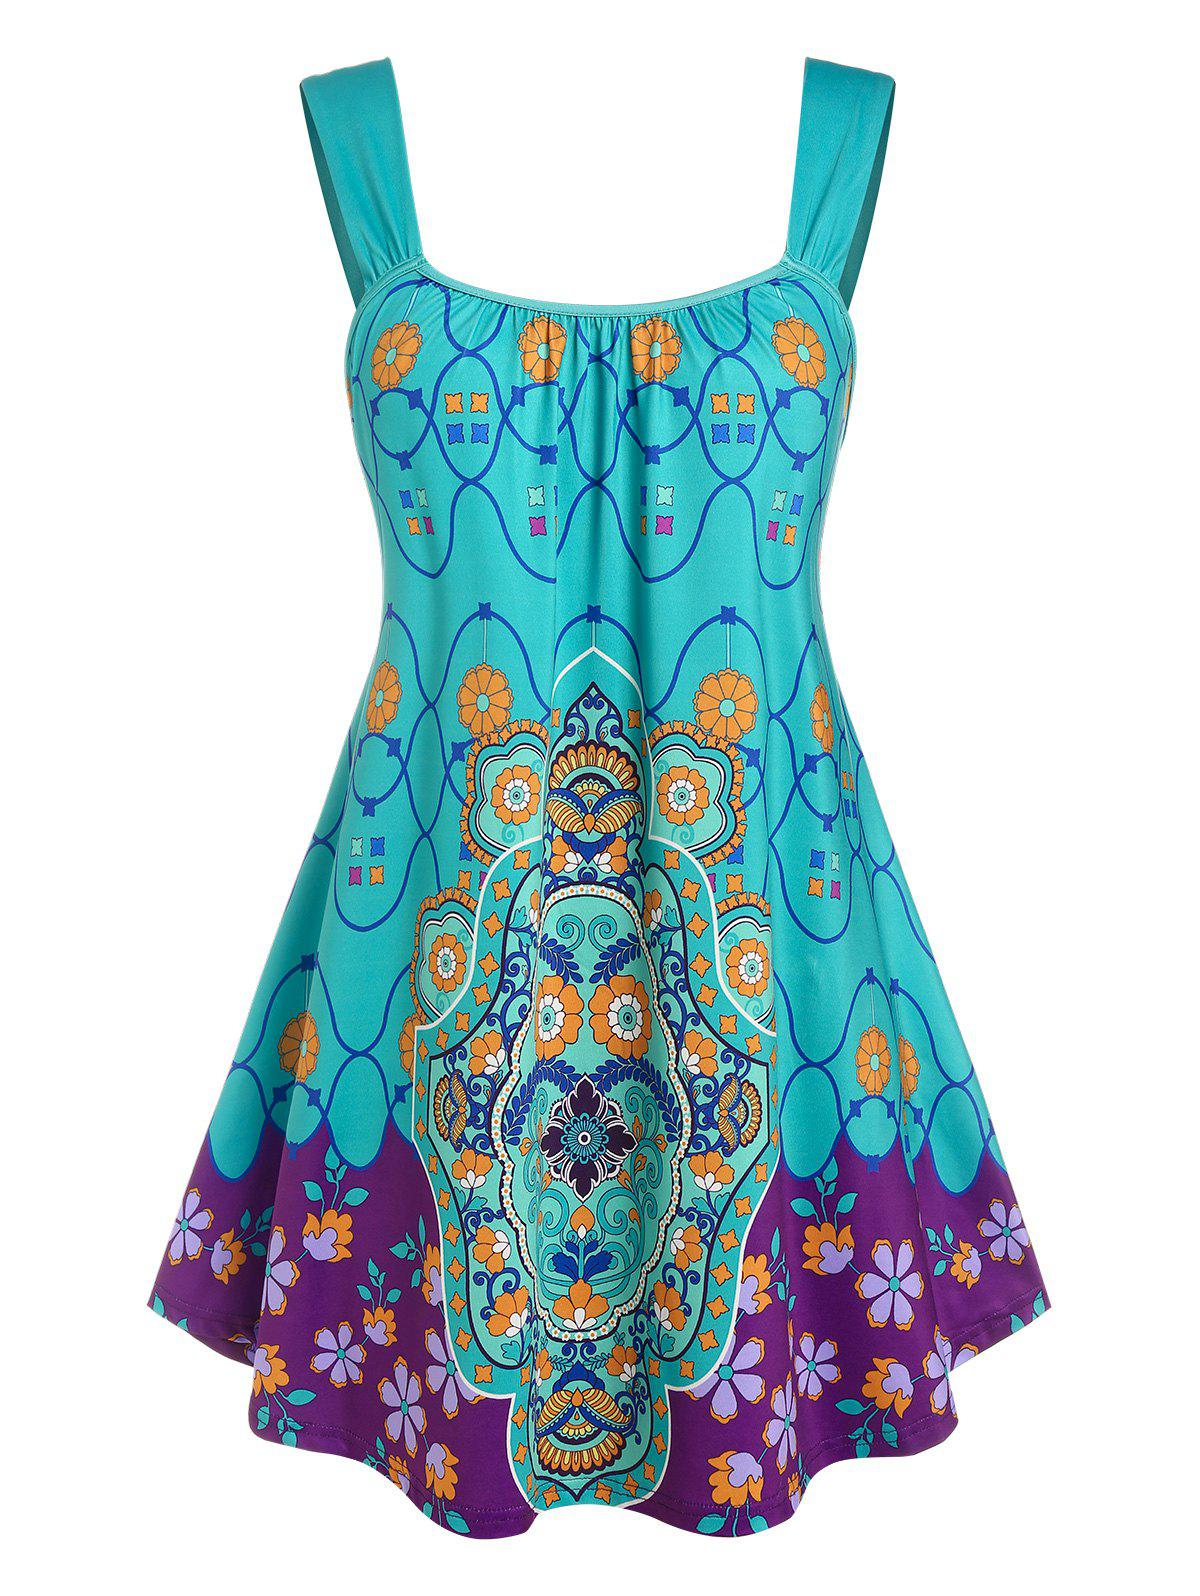 Plus Size Sleeveless Floral Print Swing Top - BLUE 3X